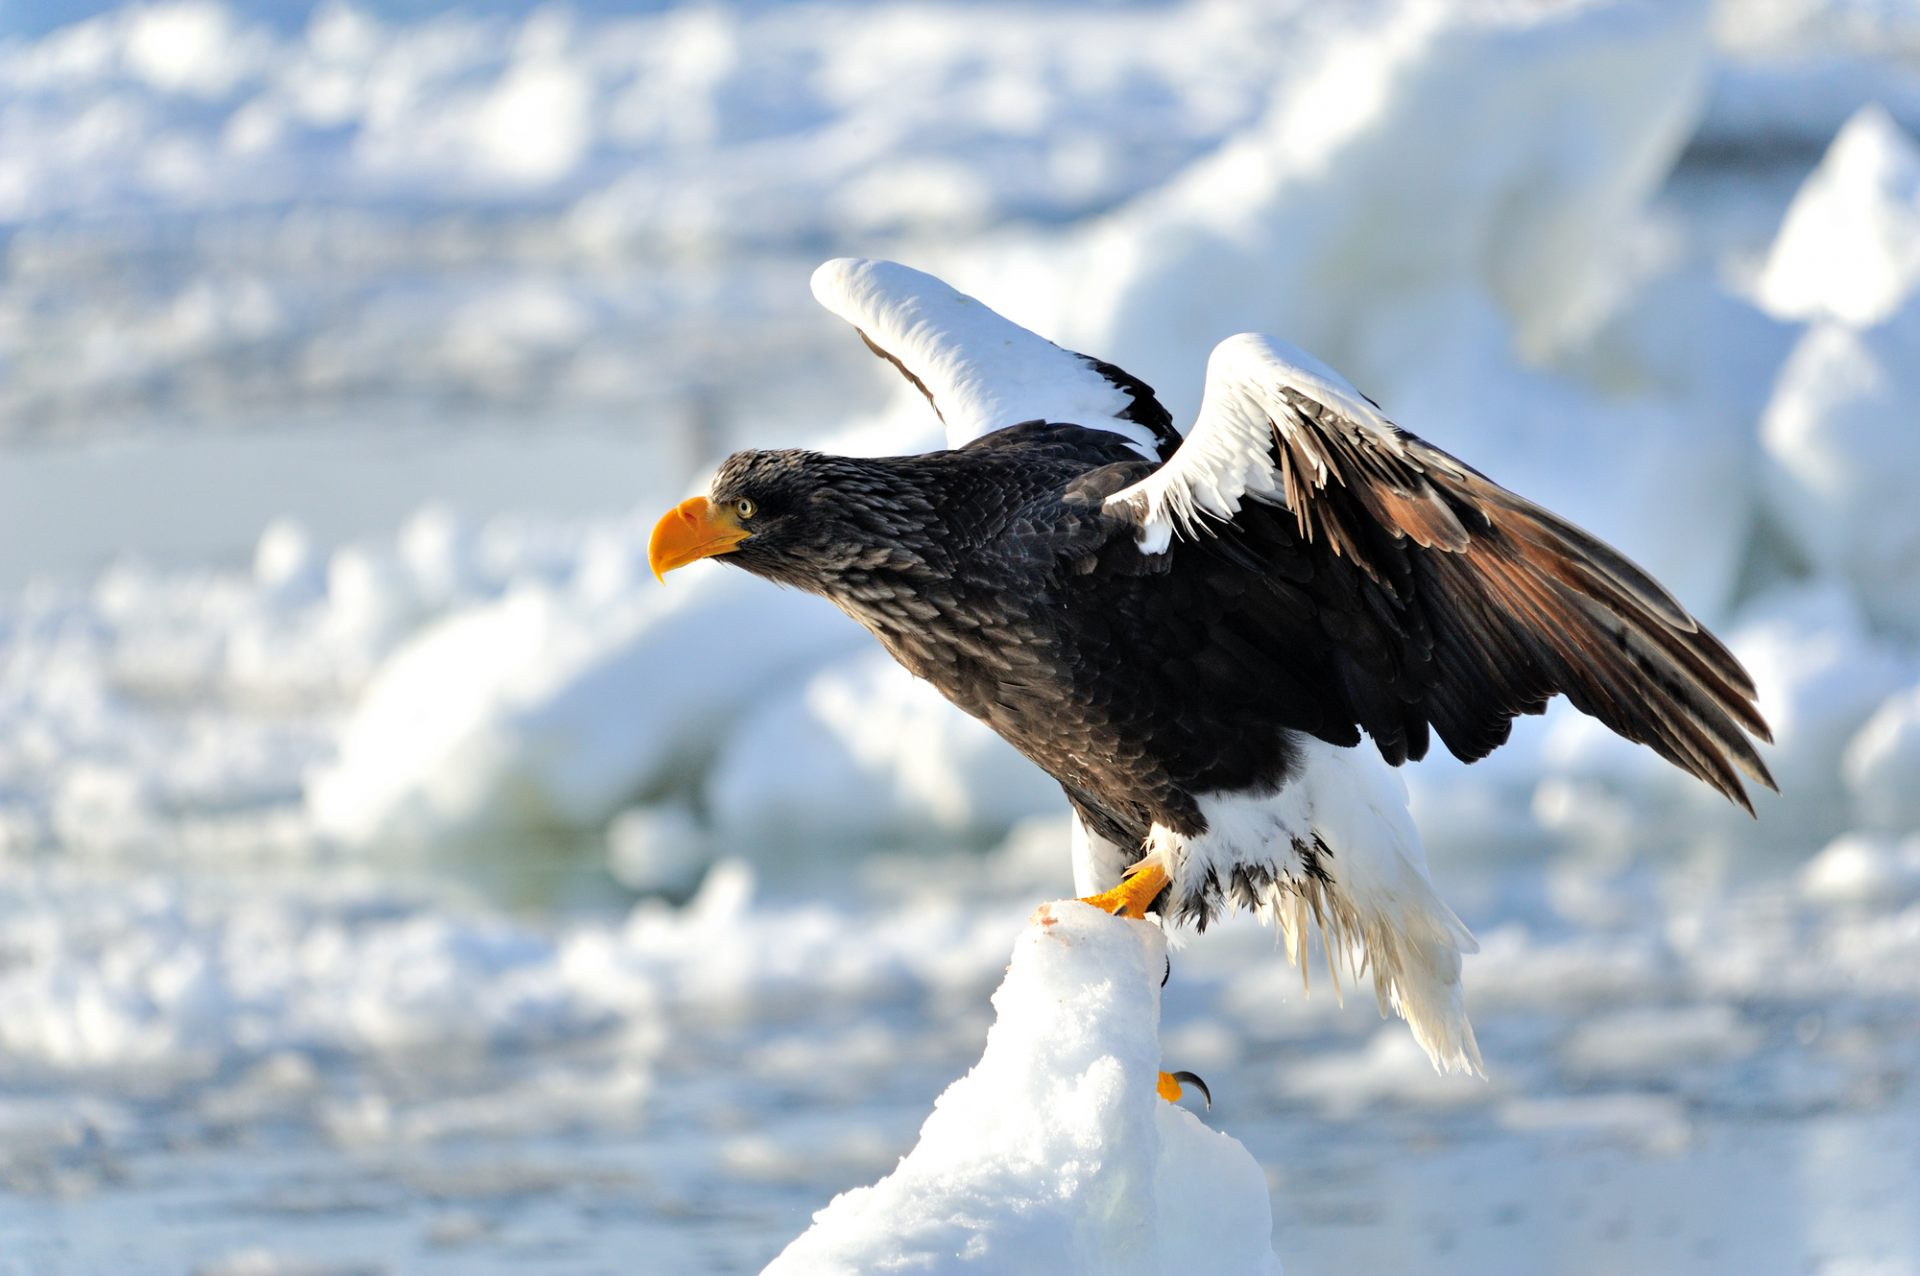 The exquisite form of the Steller's sea eagle that visits during the season of ice